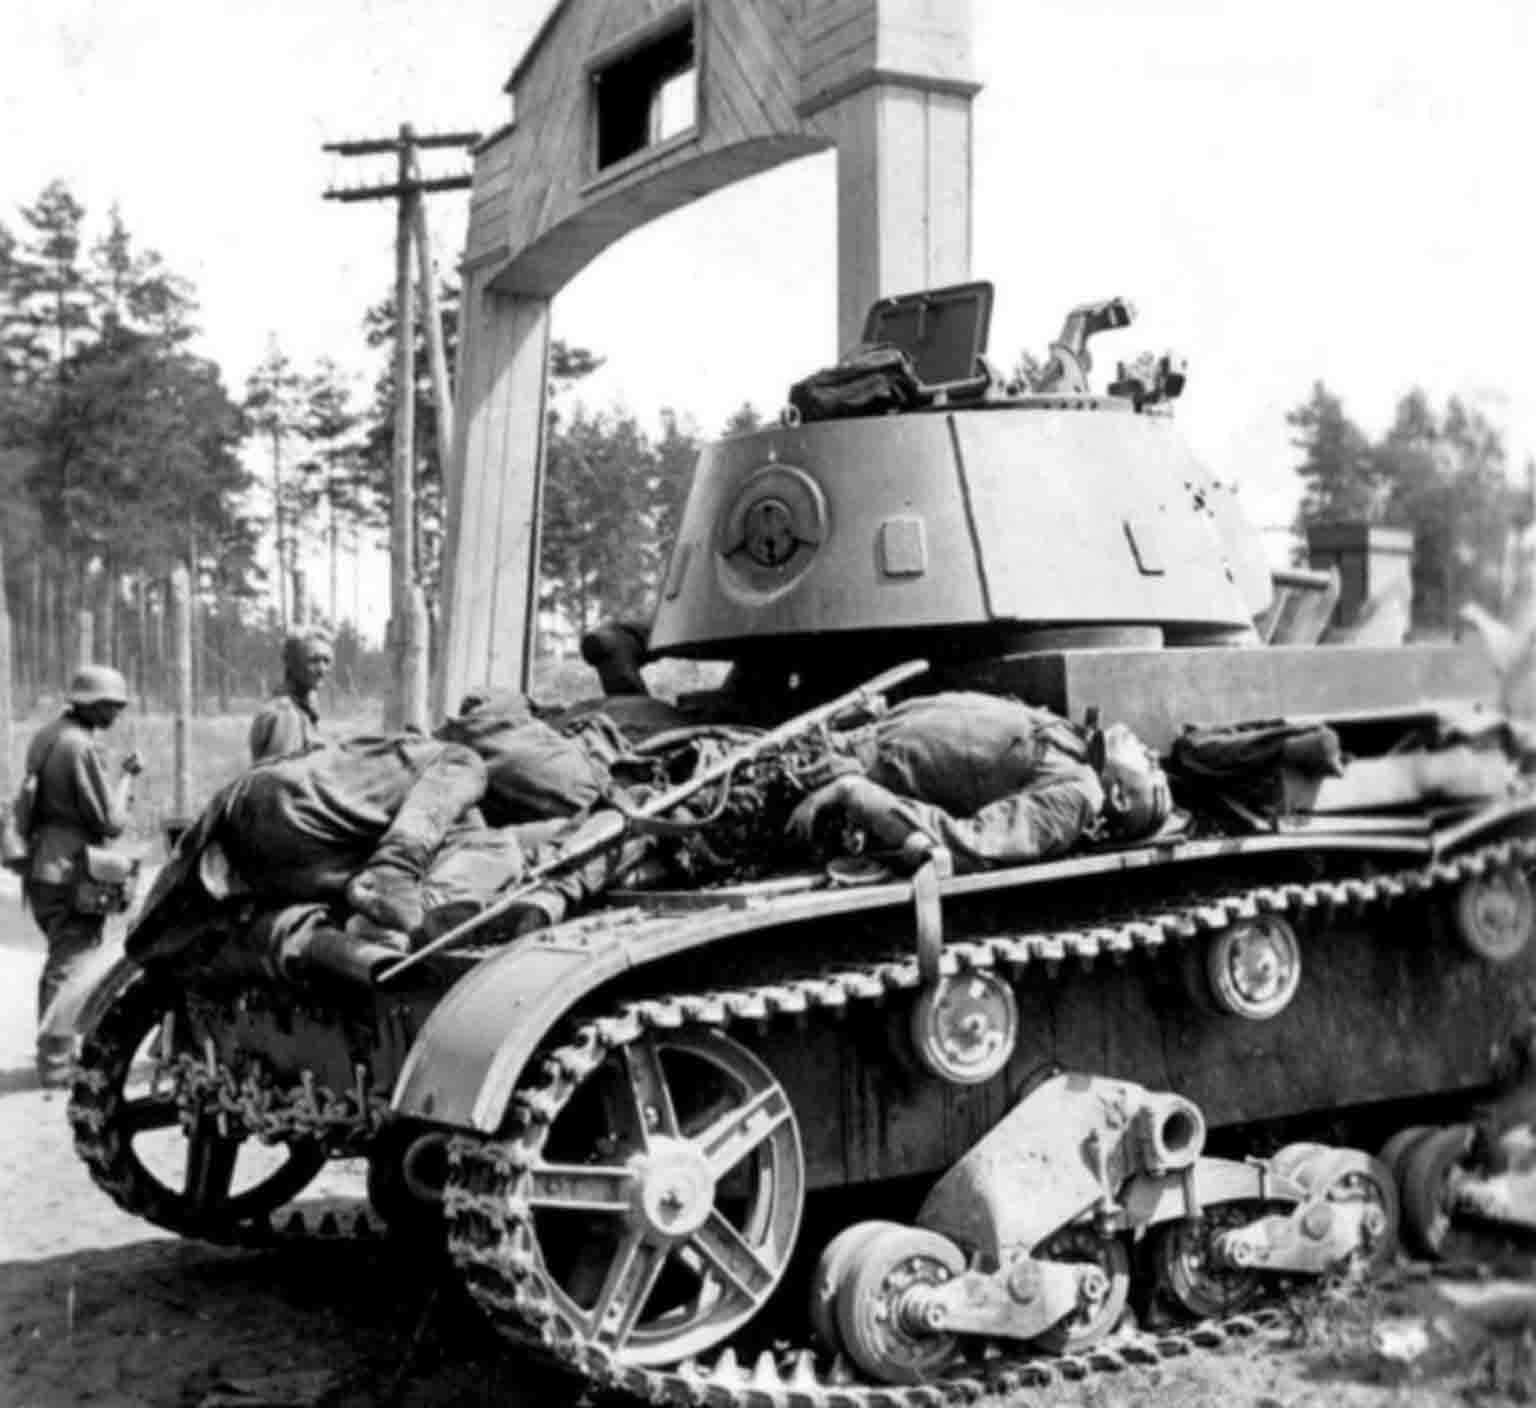 Destroyed T-26